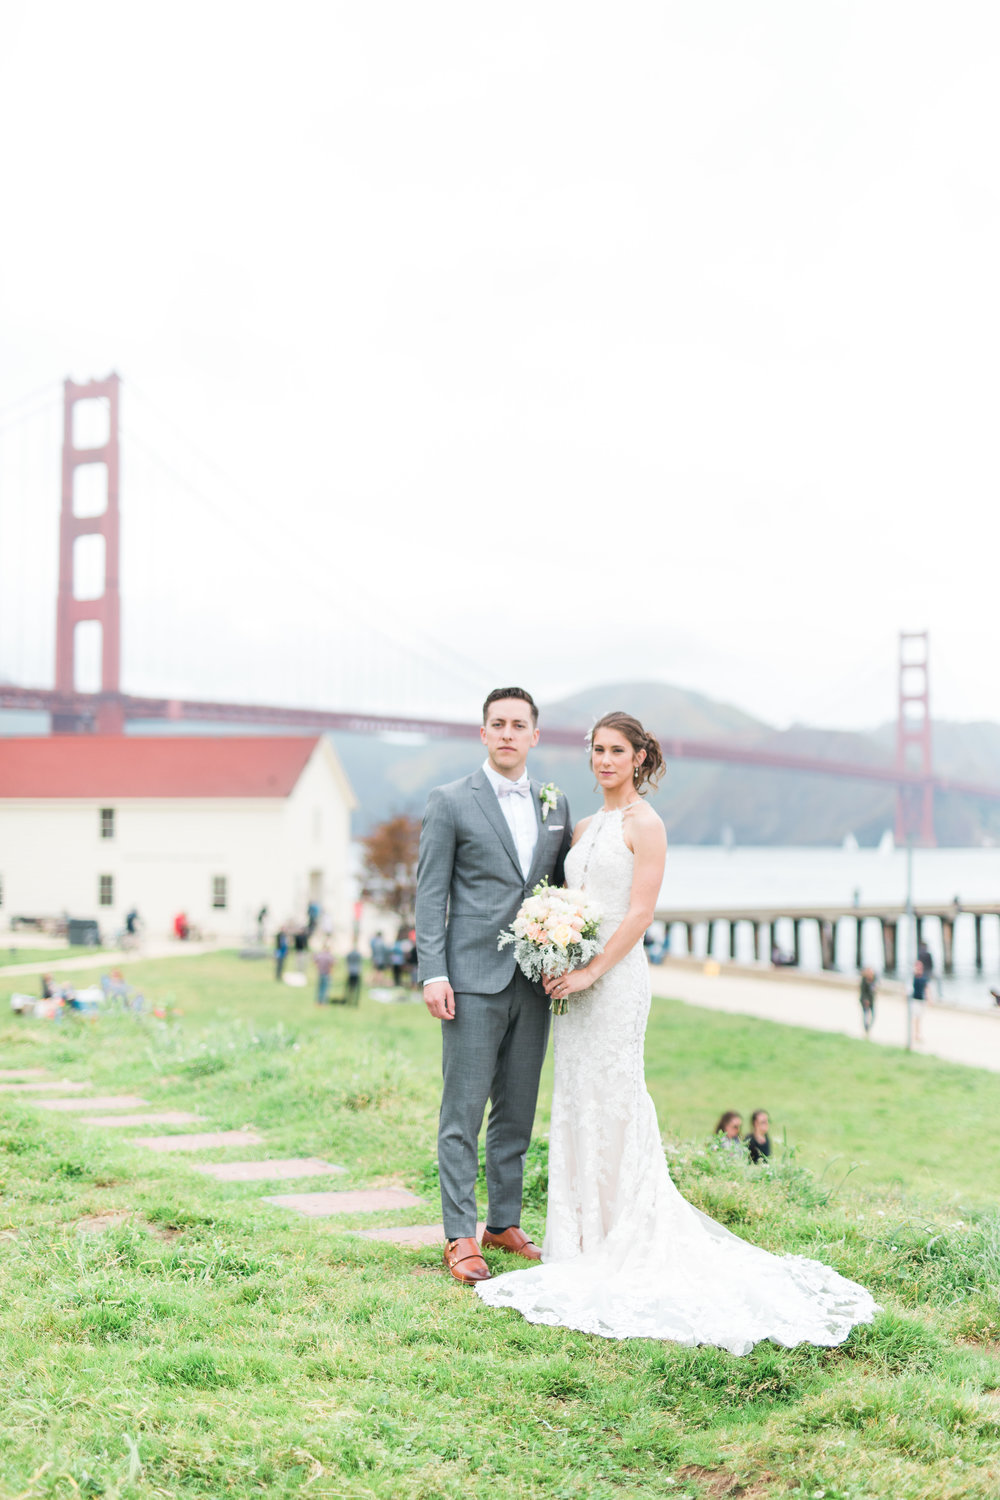 Best Engagement Photo Locations in SF - Crissy Field Engagement Photos by JBJ Pictures (17).jpg